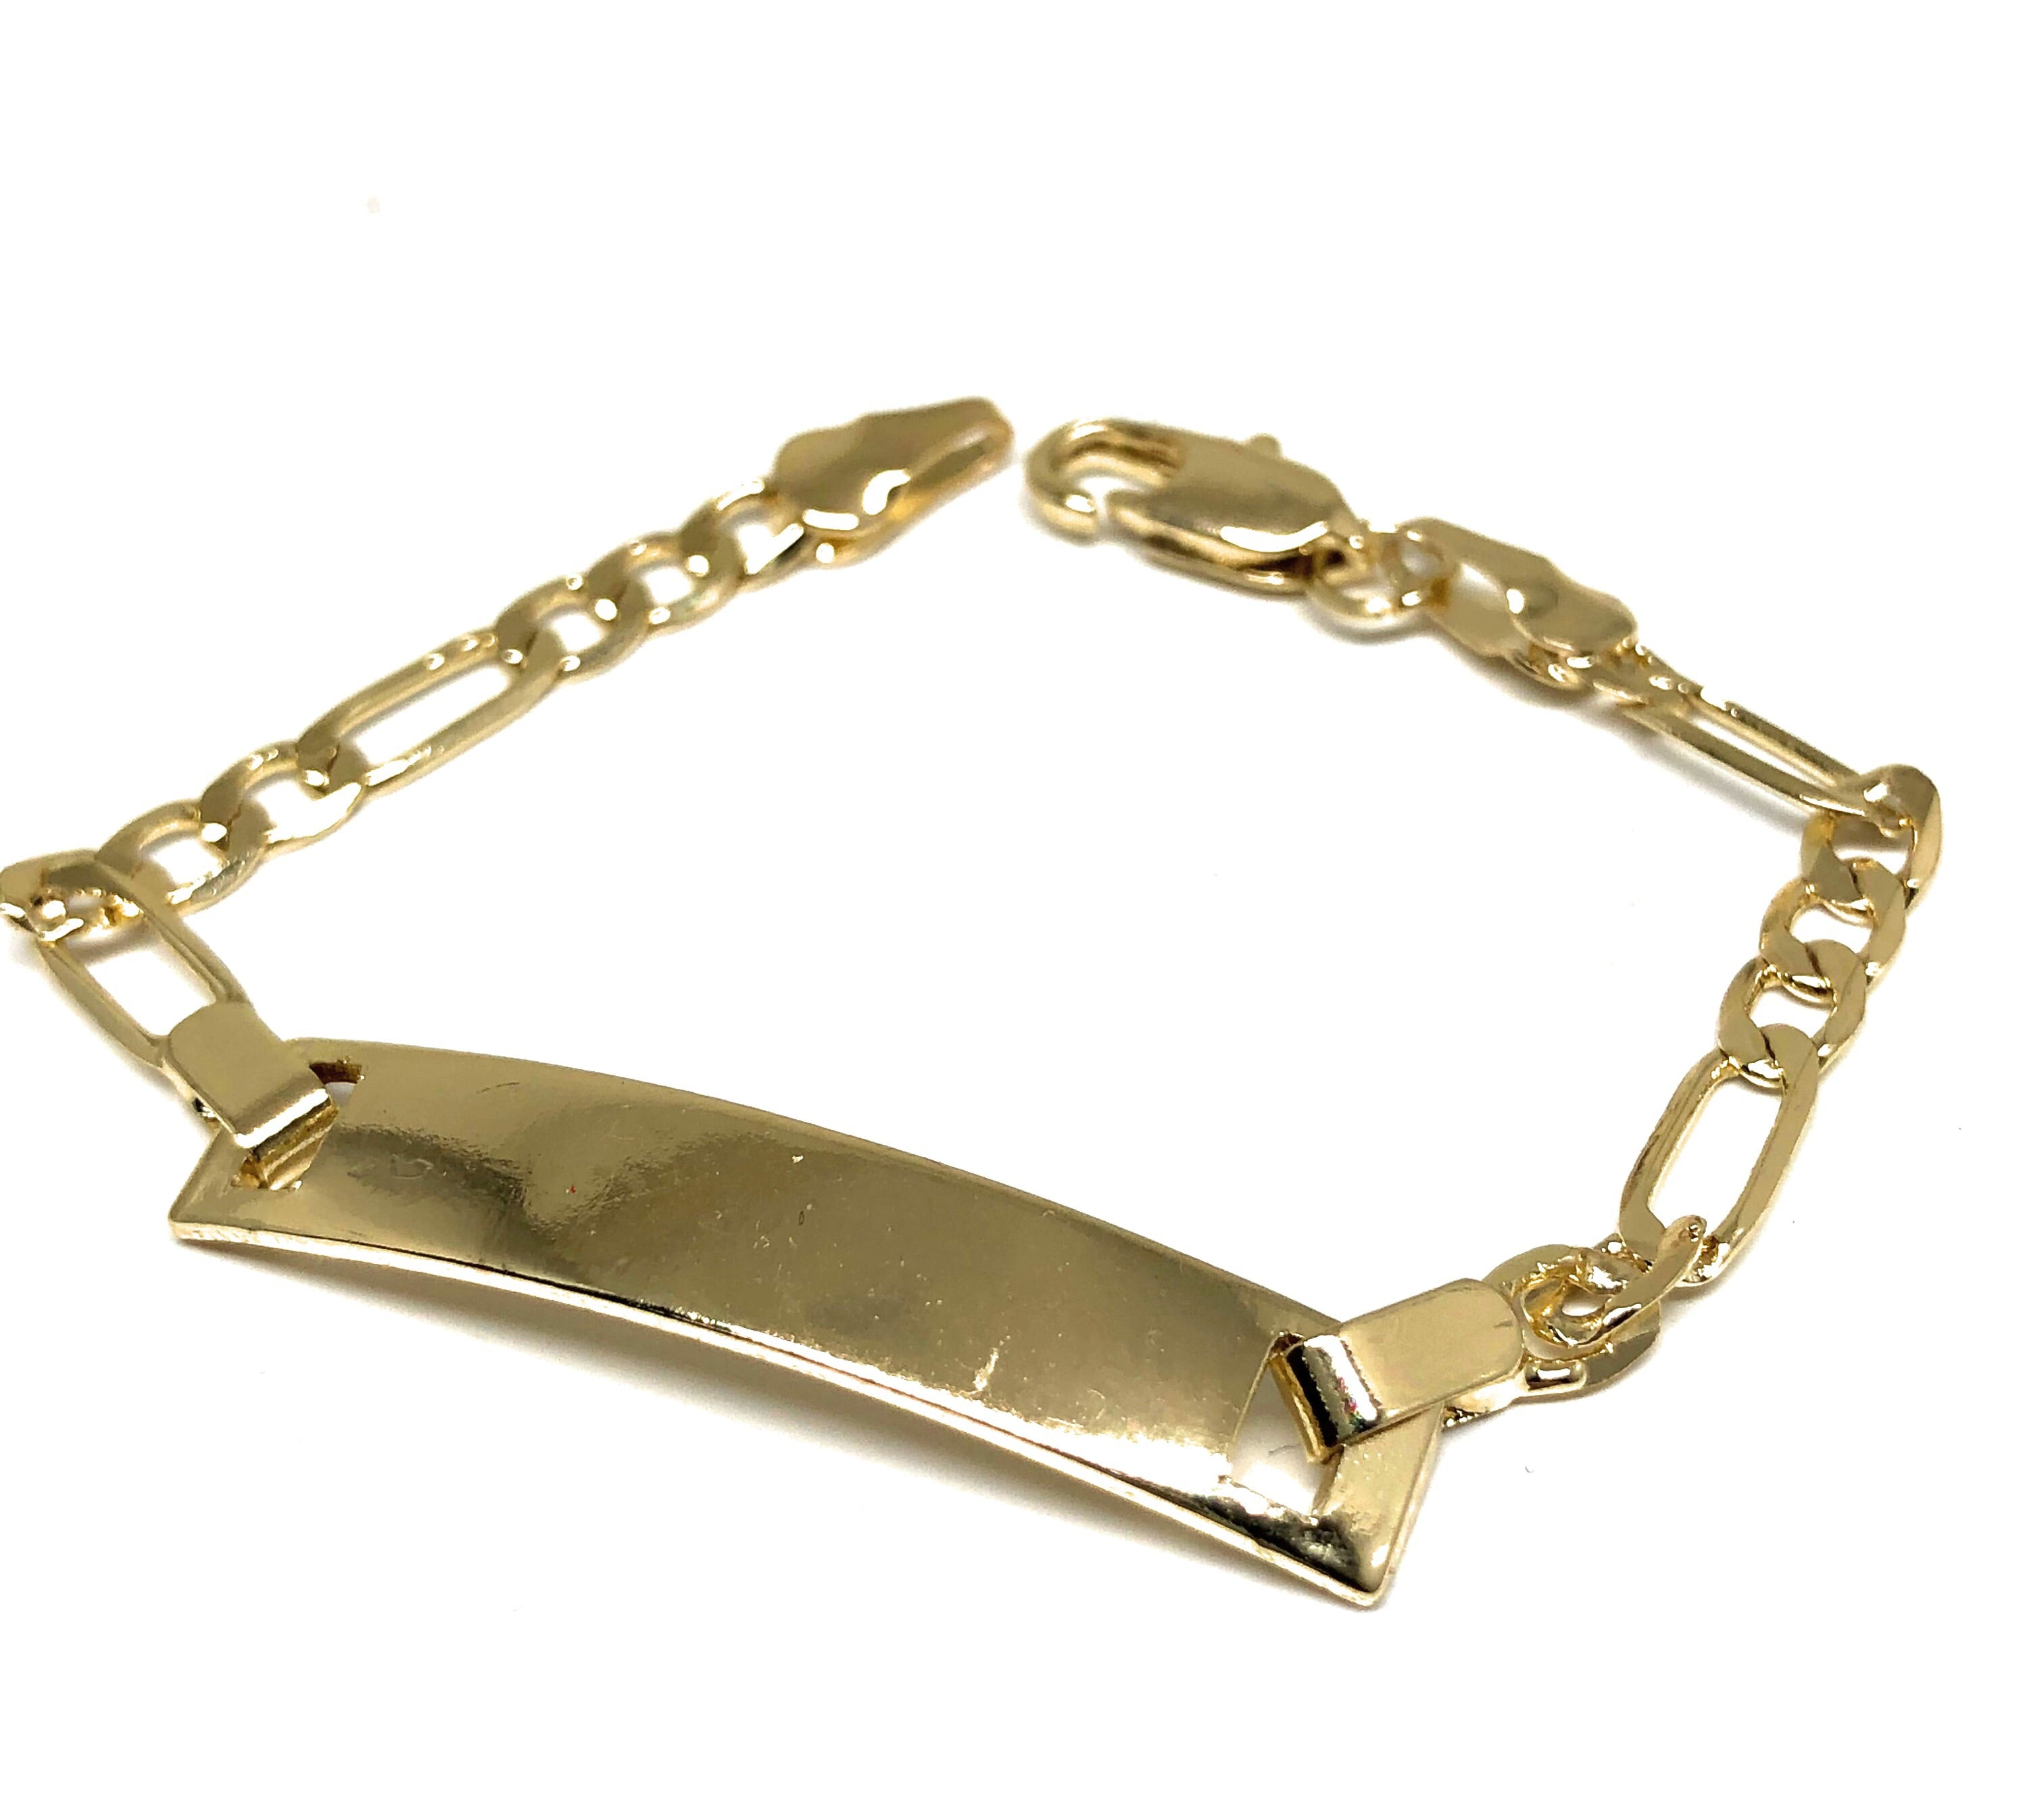 "Kids's Ages 7-13 Gold Plated ID Bracelet 6.5"" 3mm Width Esclava"